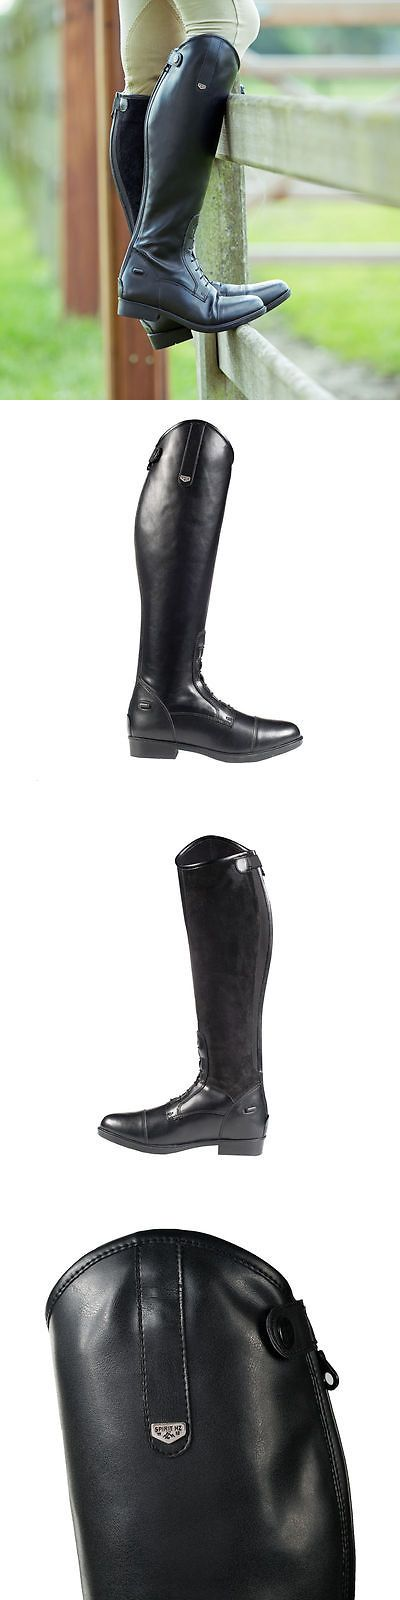 Western Boots 159002: Horze Ladies Spirit Rover Black Tall Contoured Riding English Field Boots Asst -> BUY IT NOW ONLY: $99.99 on eBay!